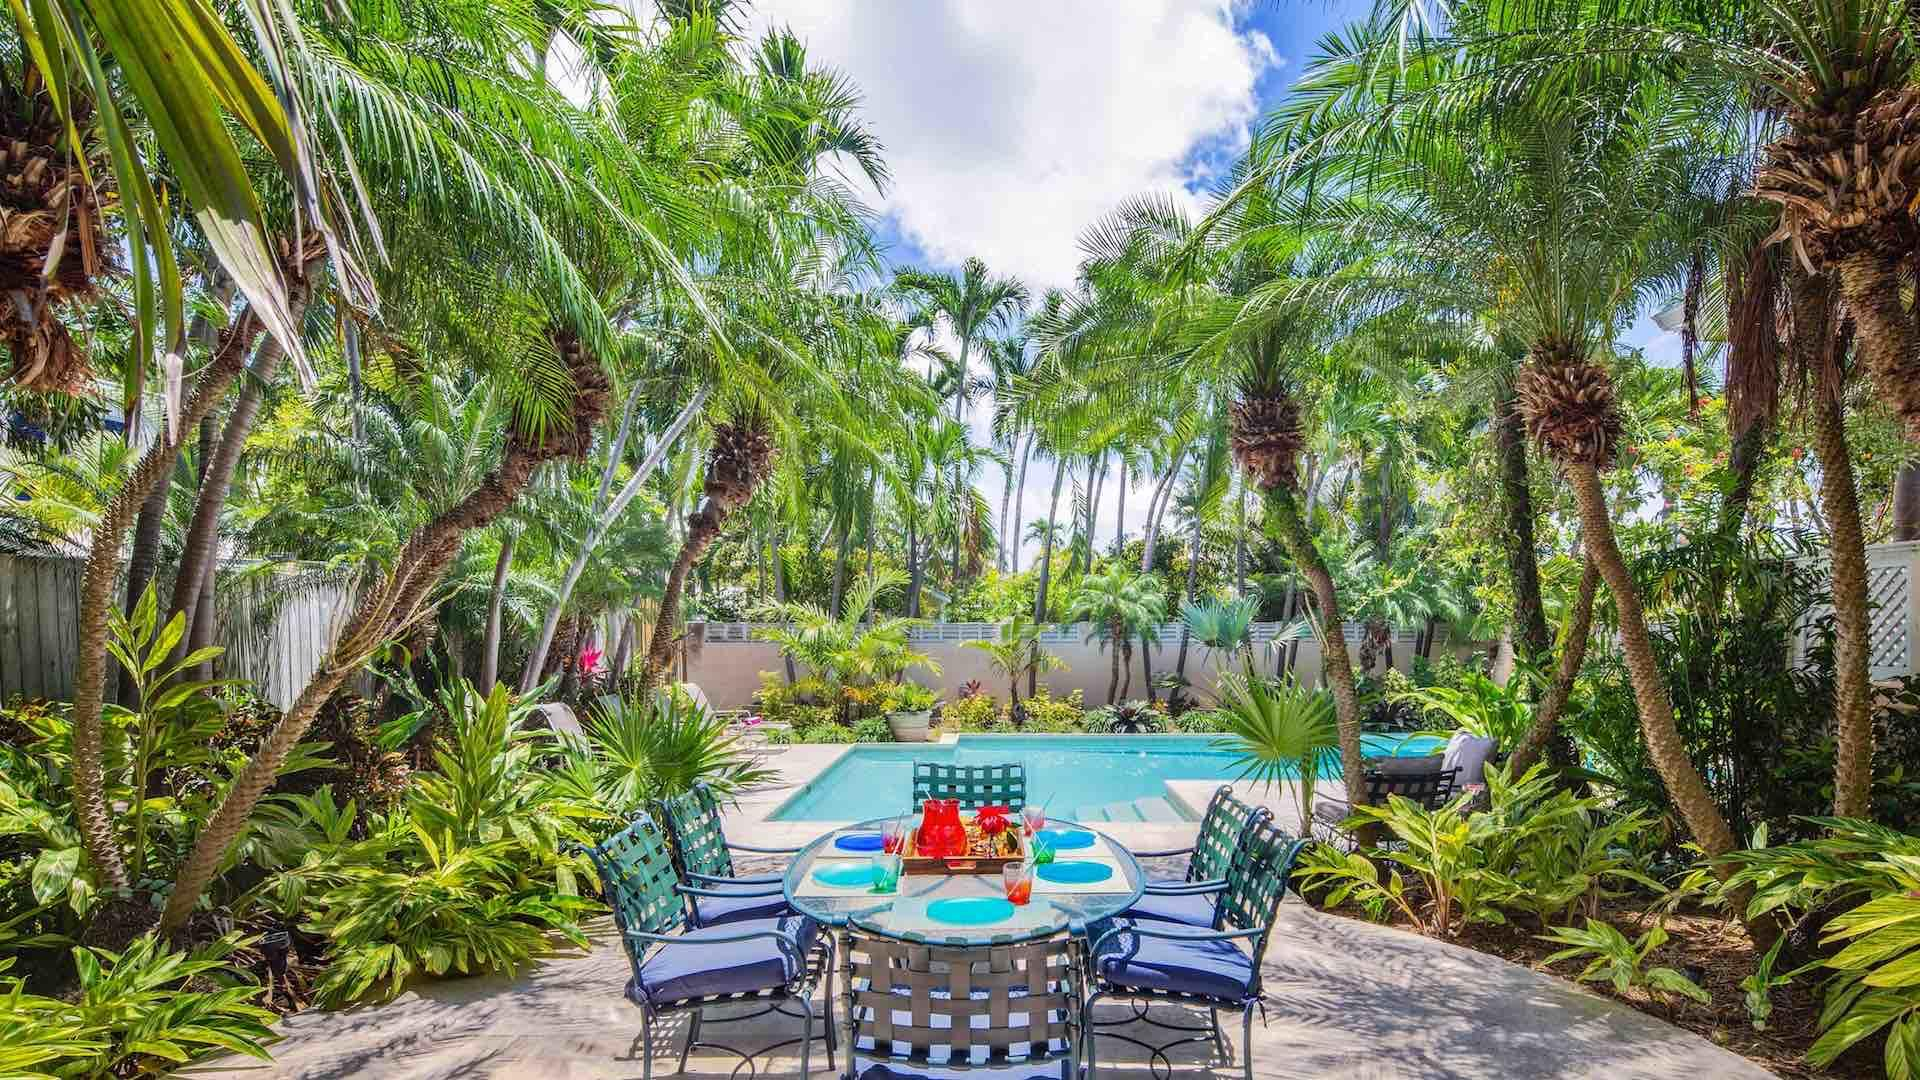 There is a second outdoor dining set near the pool, for the perfect pool party…